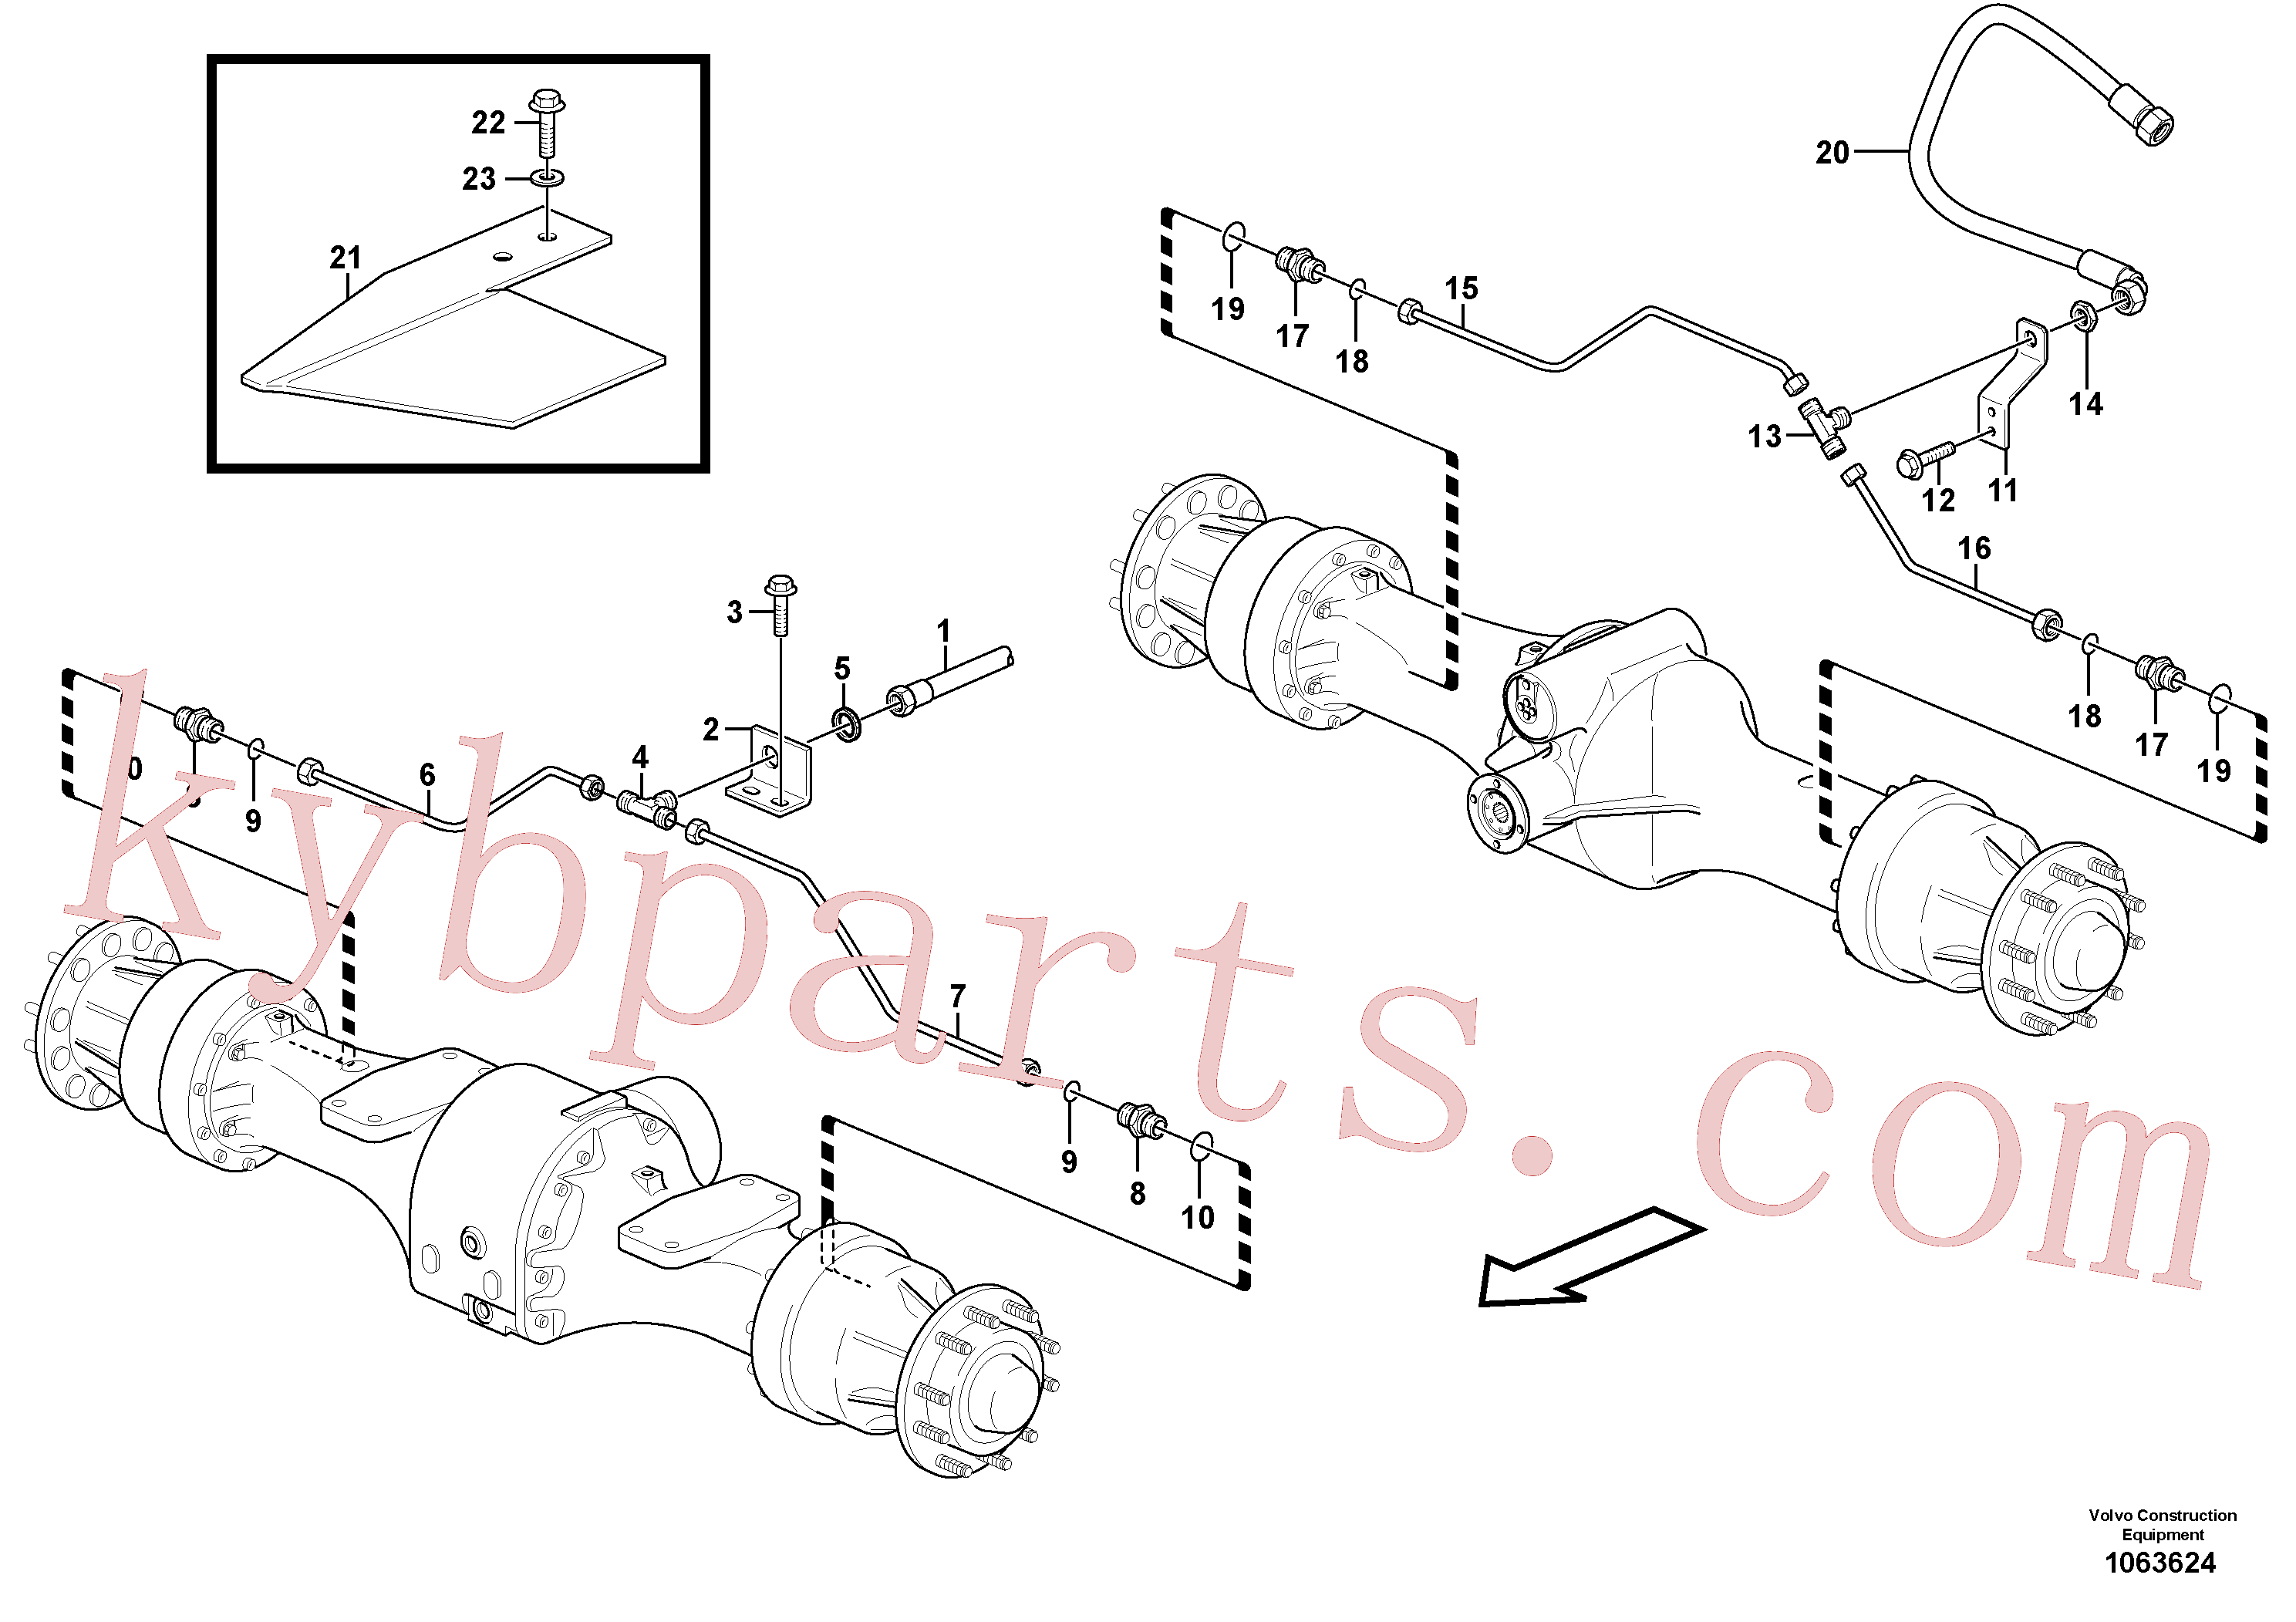 VOE935375 for Volvo Brake pipes, front axle and rear axle(1063624 assembly)